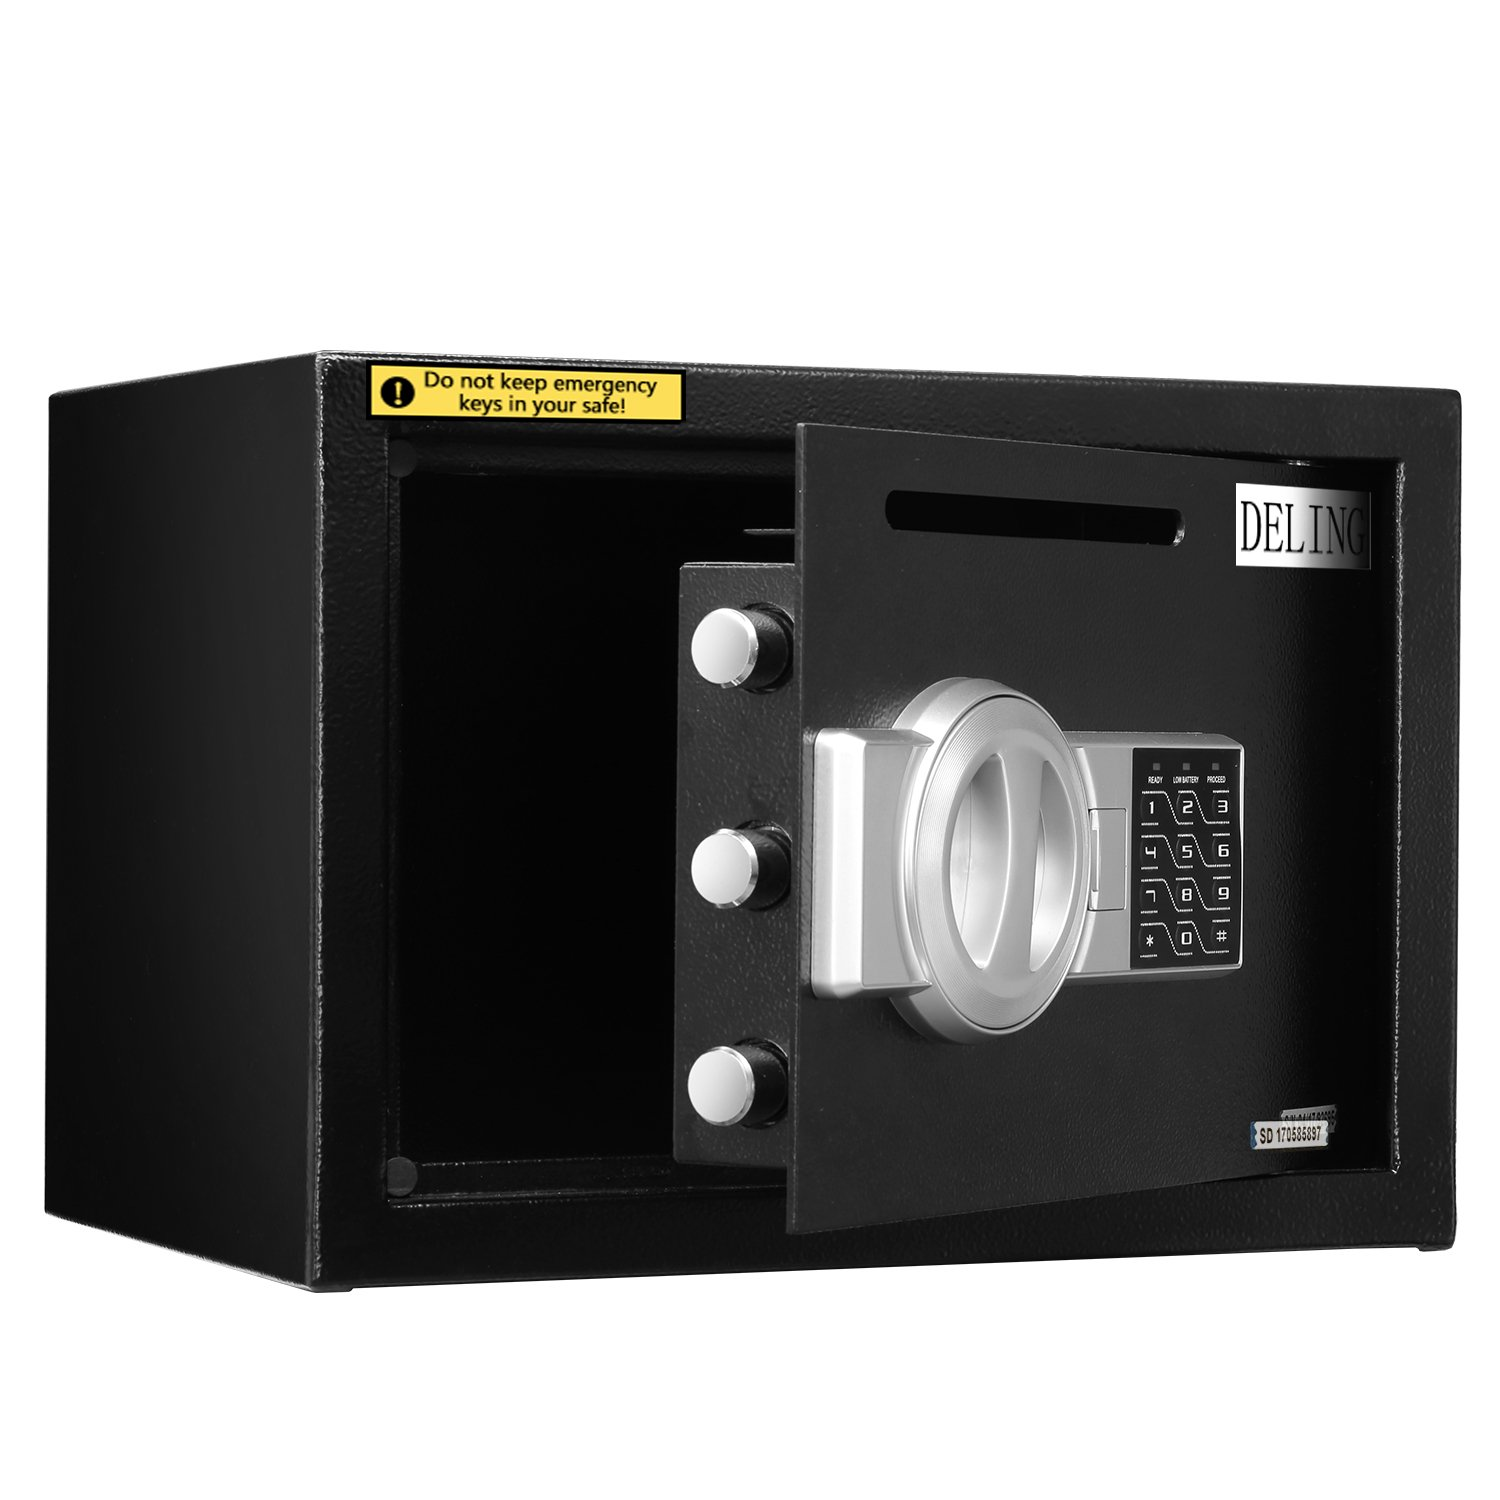 HYD-Parts Digital Security Safety Box,Money Gunsafe Cabinet Box for Home Office Hotel (25) by HYD-Parts (Image #6)